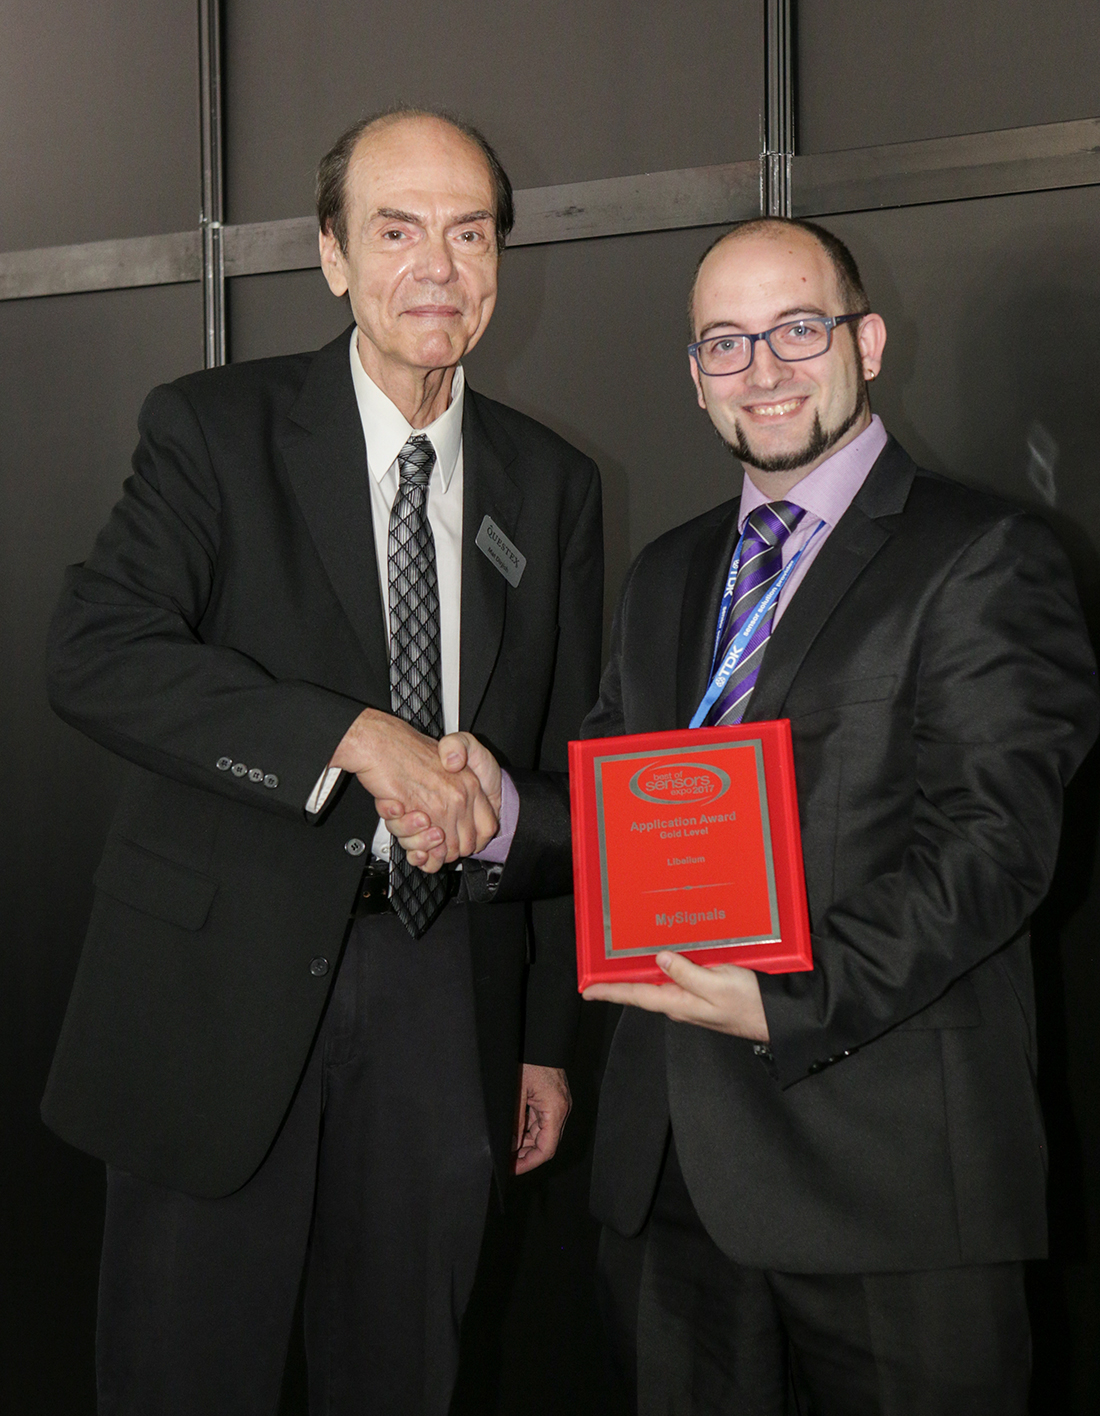 David Bordonada receiving BOSE Awards to MySignals from Mat Dirjish